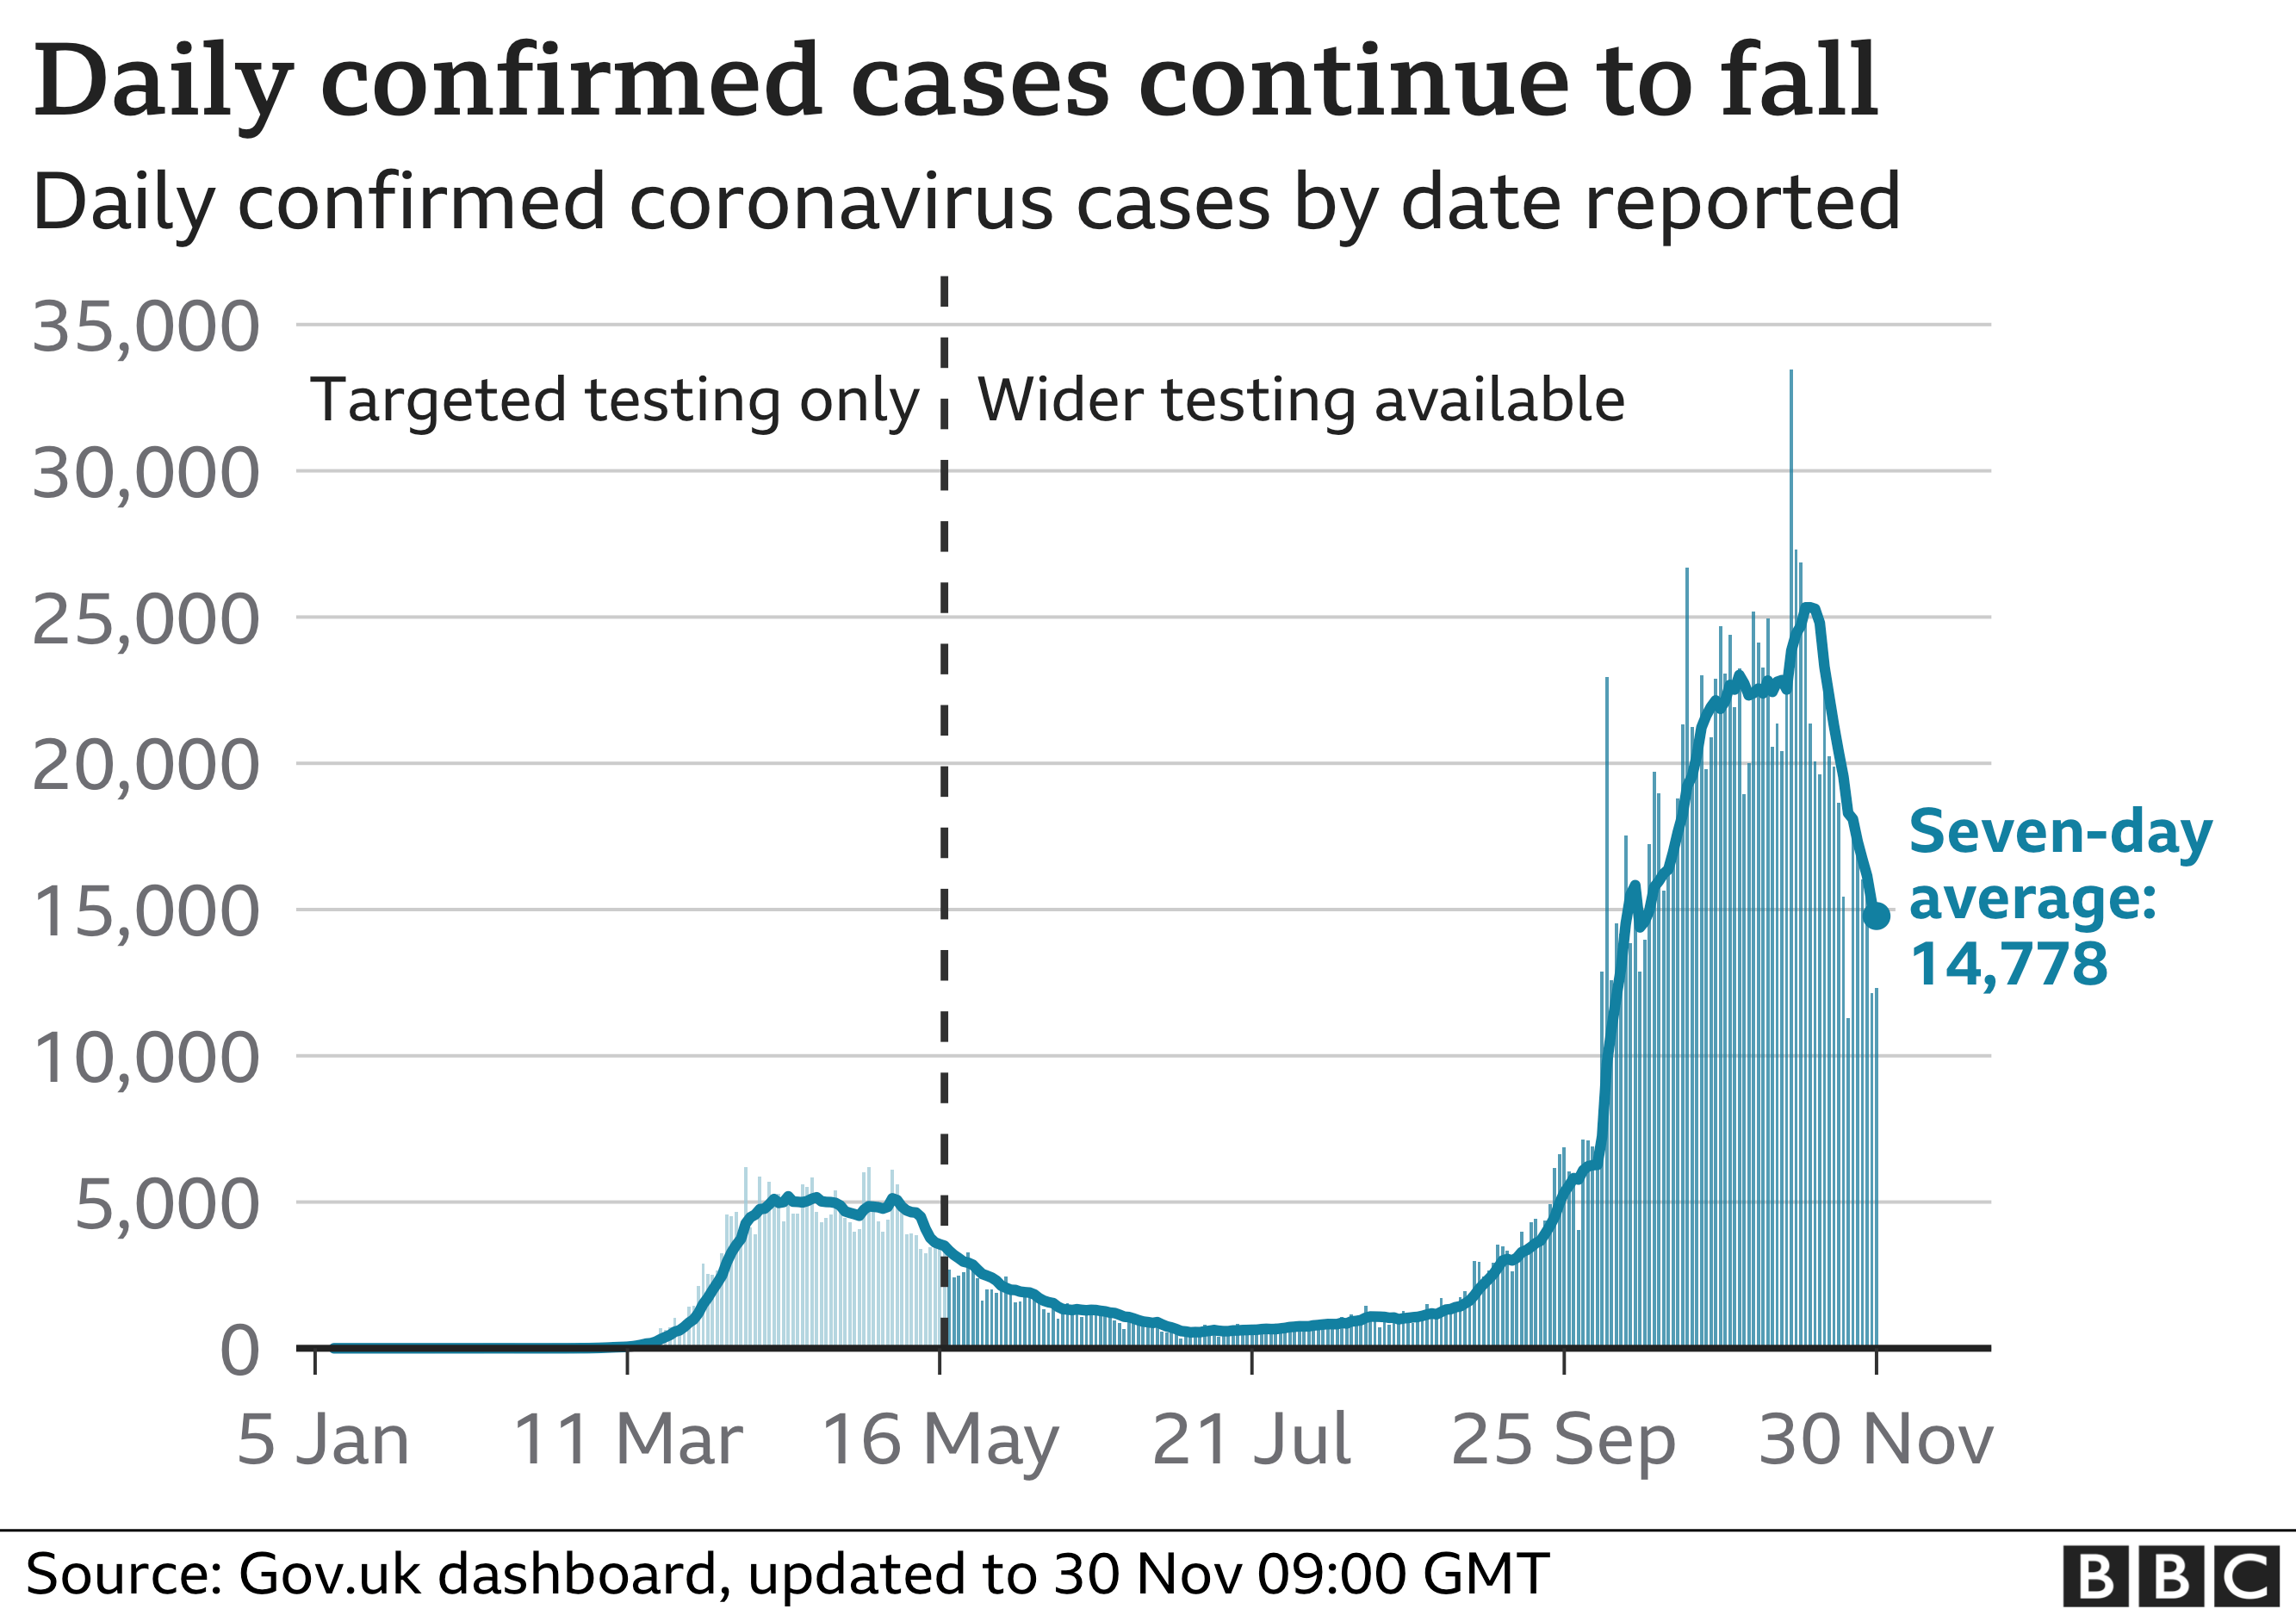 Chart showing confirmed cases dipping. Updated 30 Nov.